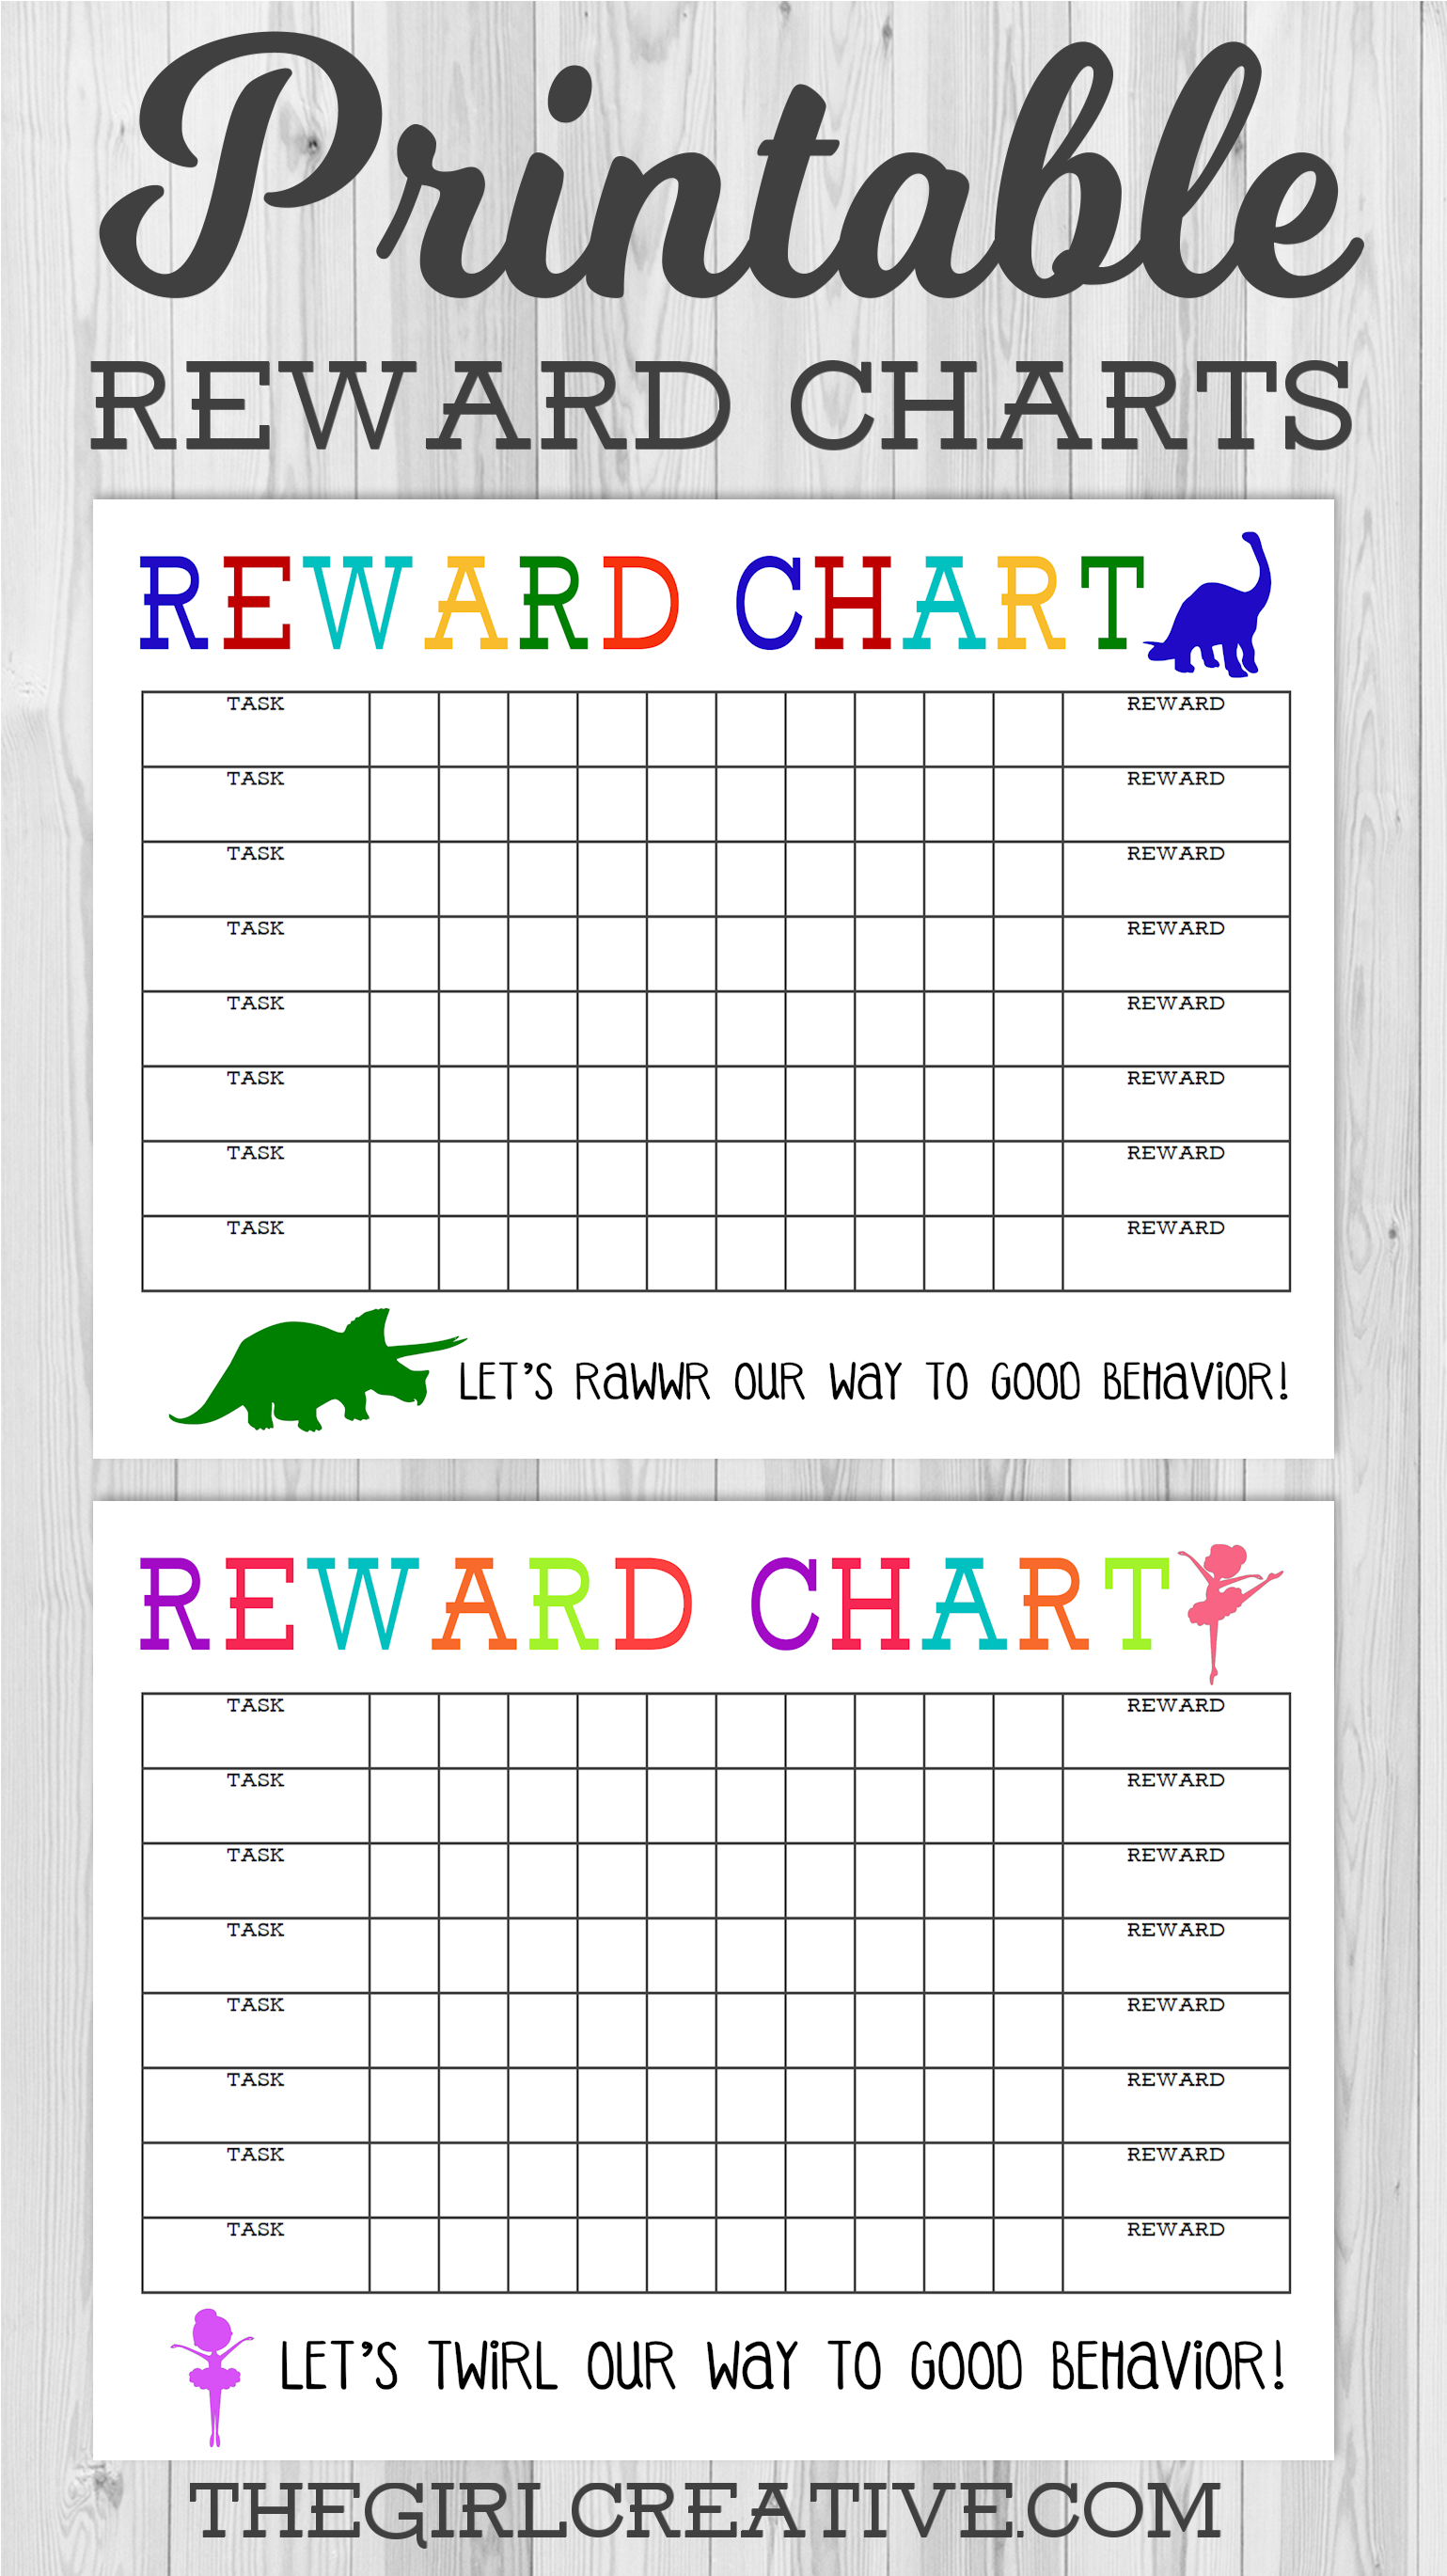 Printable Reward Chart | Share Today's Craft And Diy Ideas - Reward Charts For Toddlers Free Printable